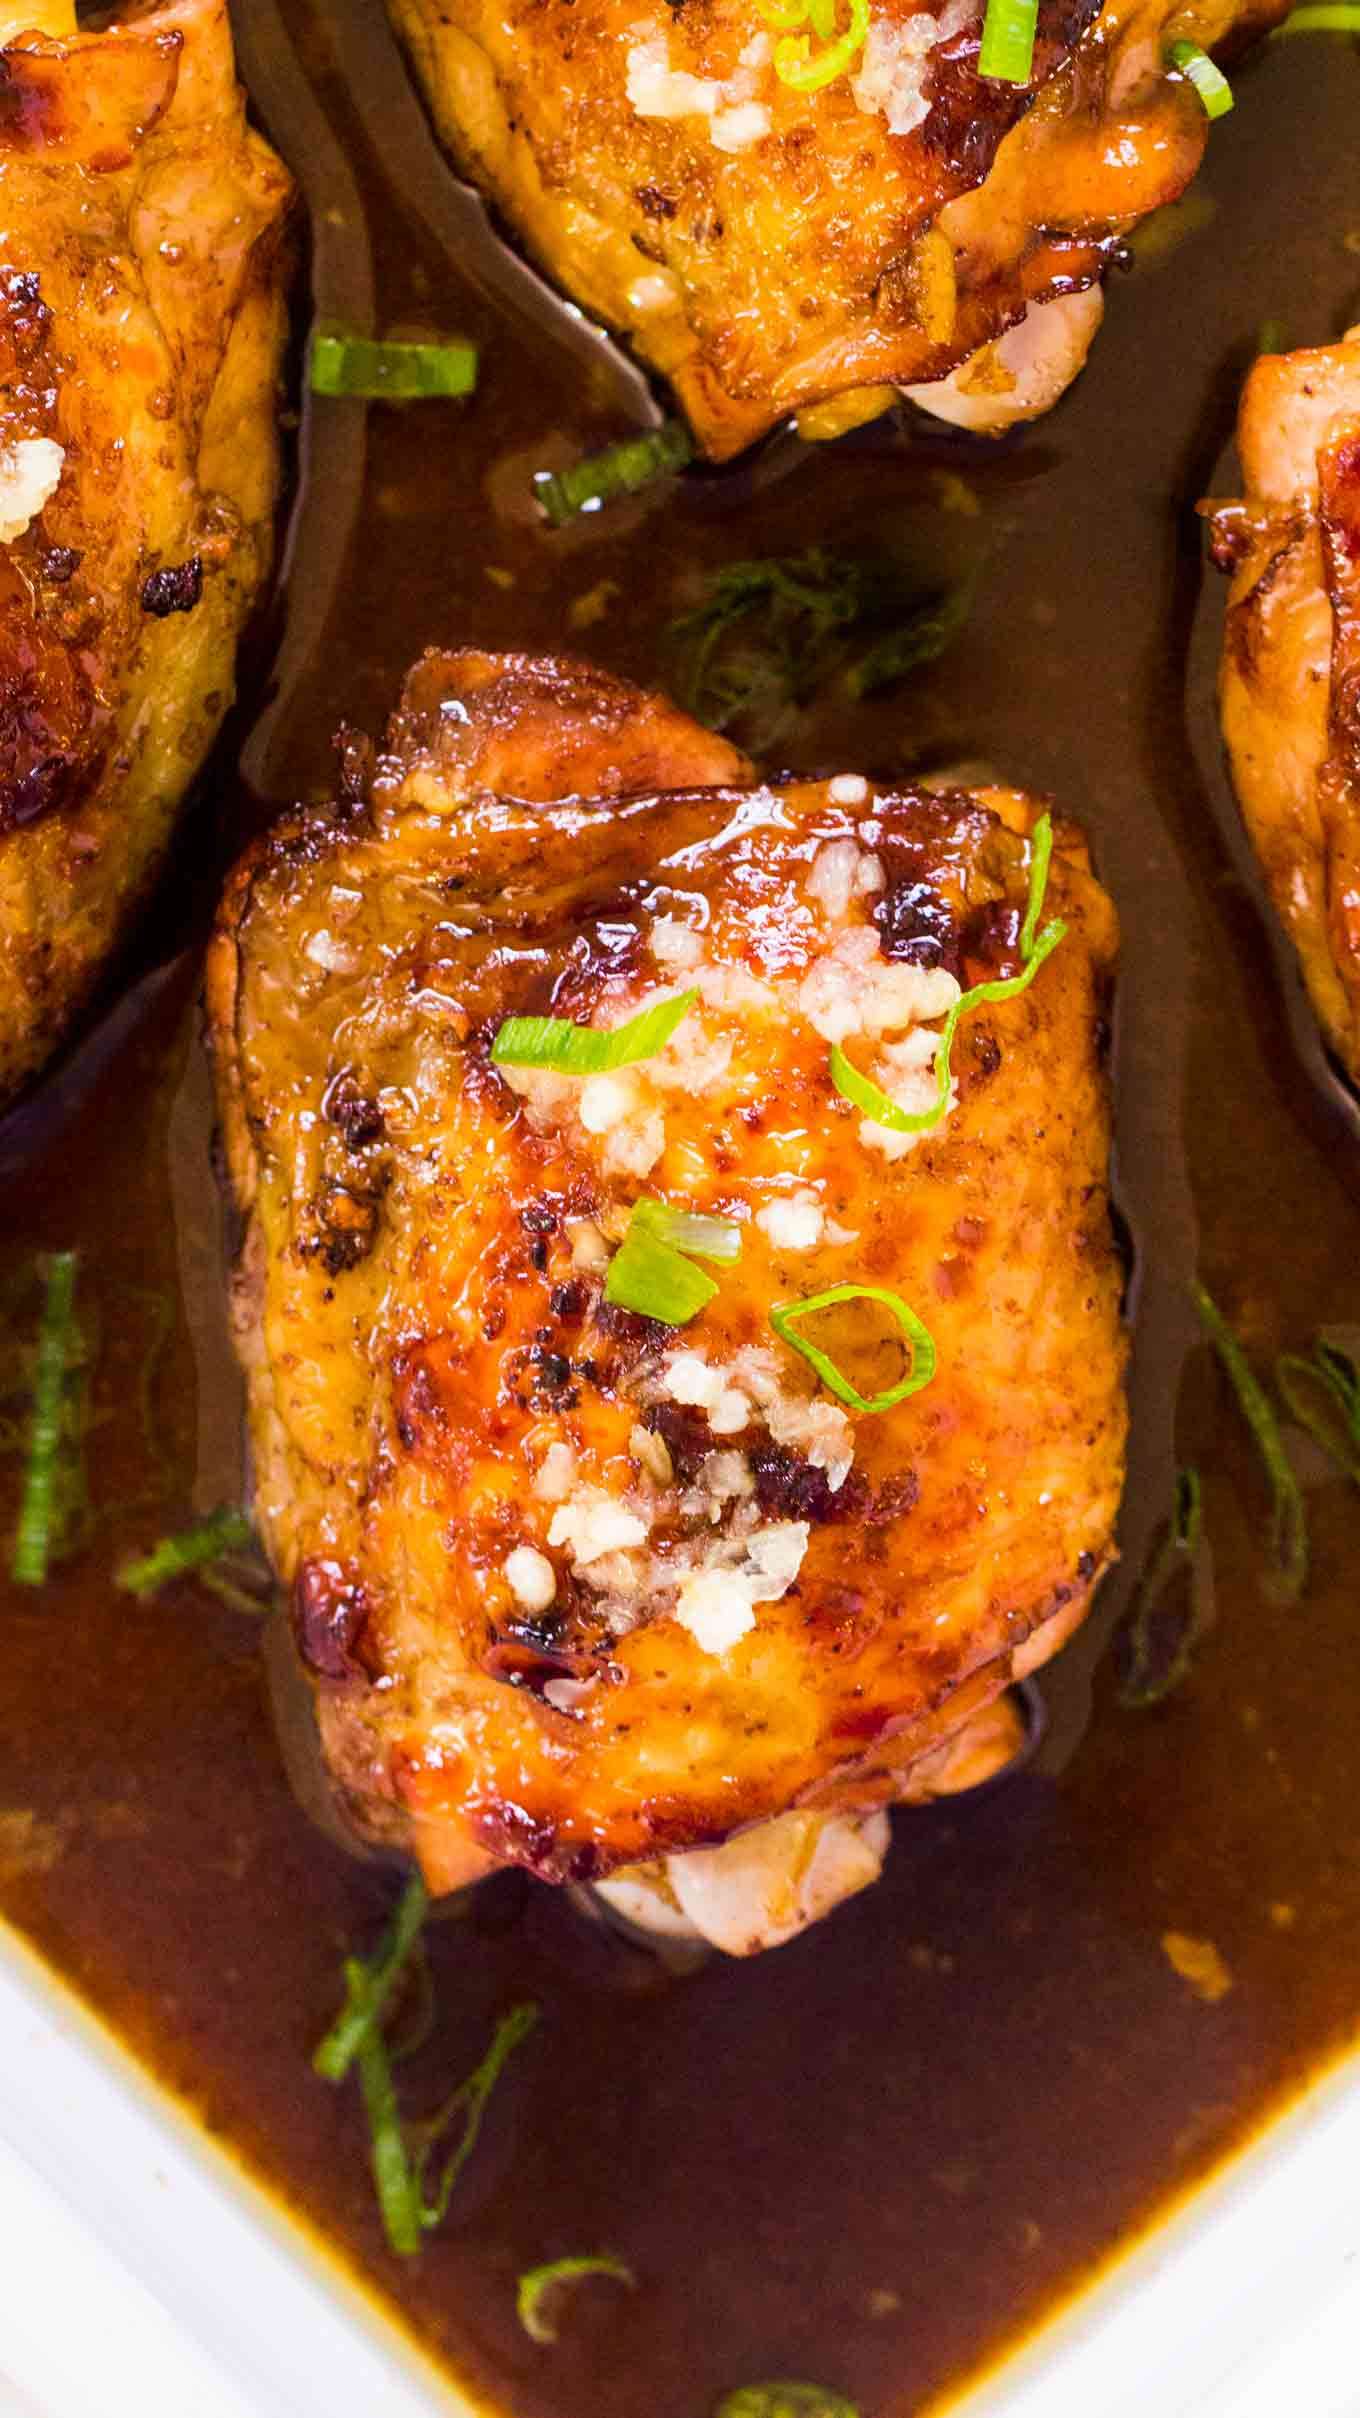 Amazing Honey Balsamic Chicken is very juicy and tender, coated in a tasty sweet and slightly tangy sauce, made in one pan in 30 minutes only!